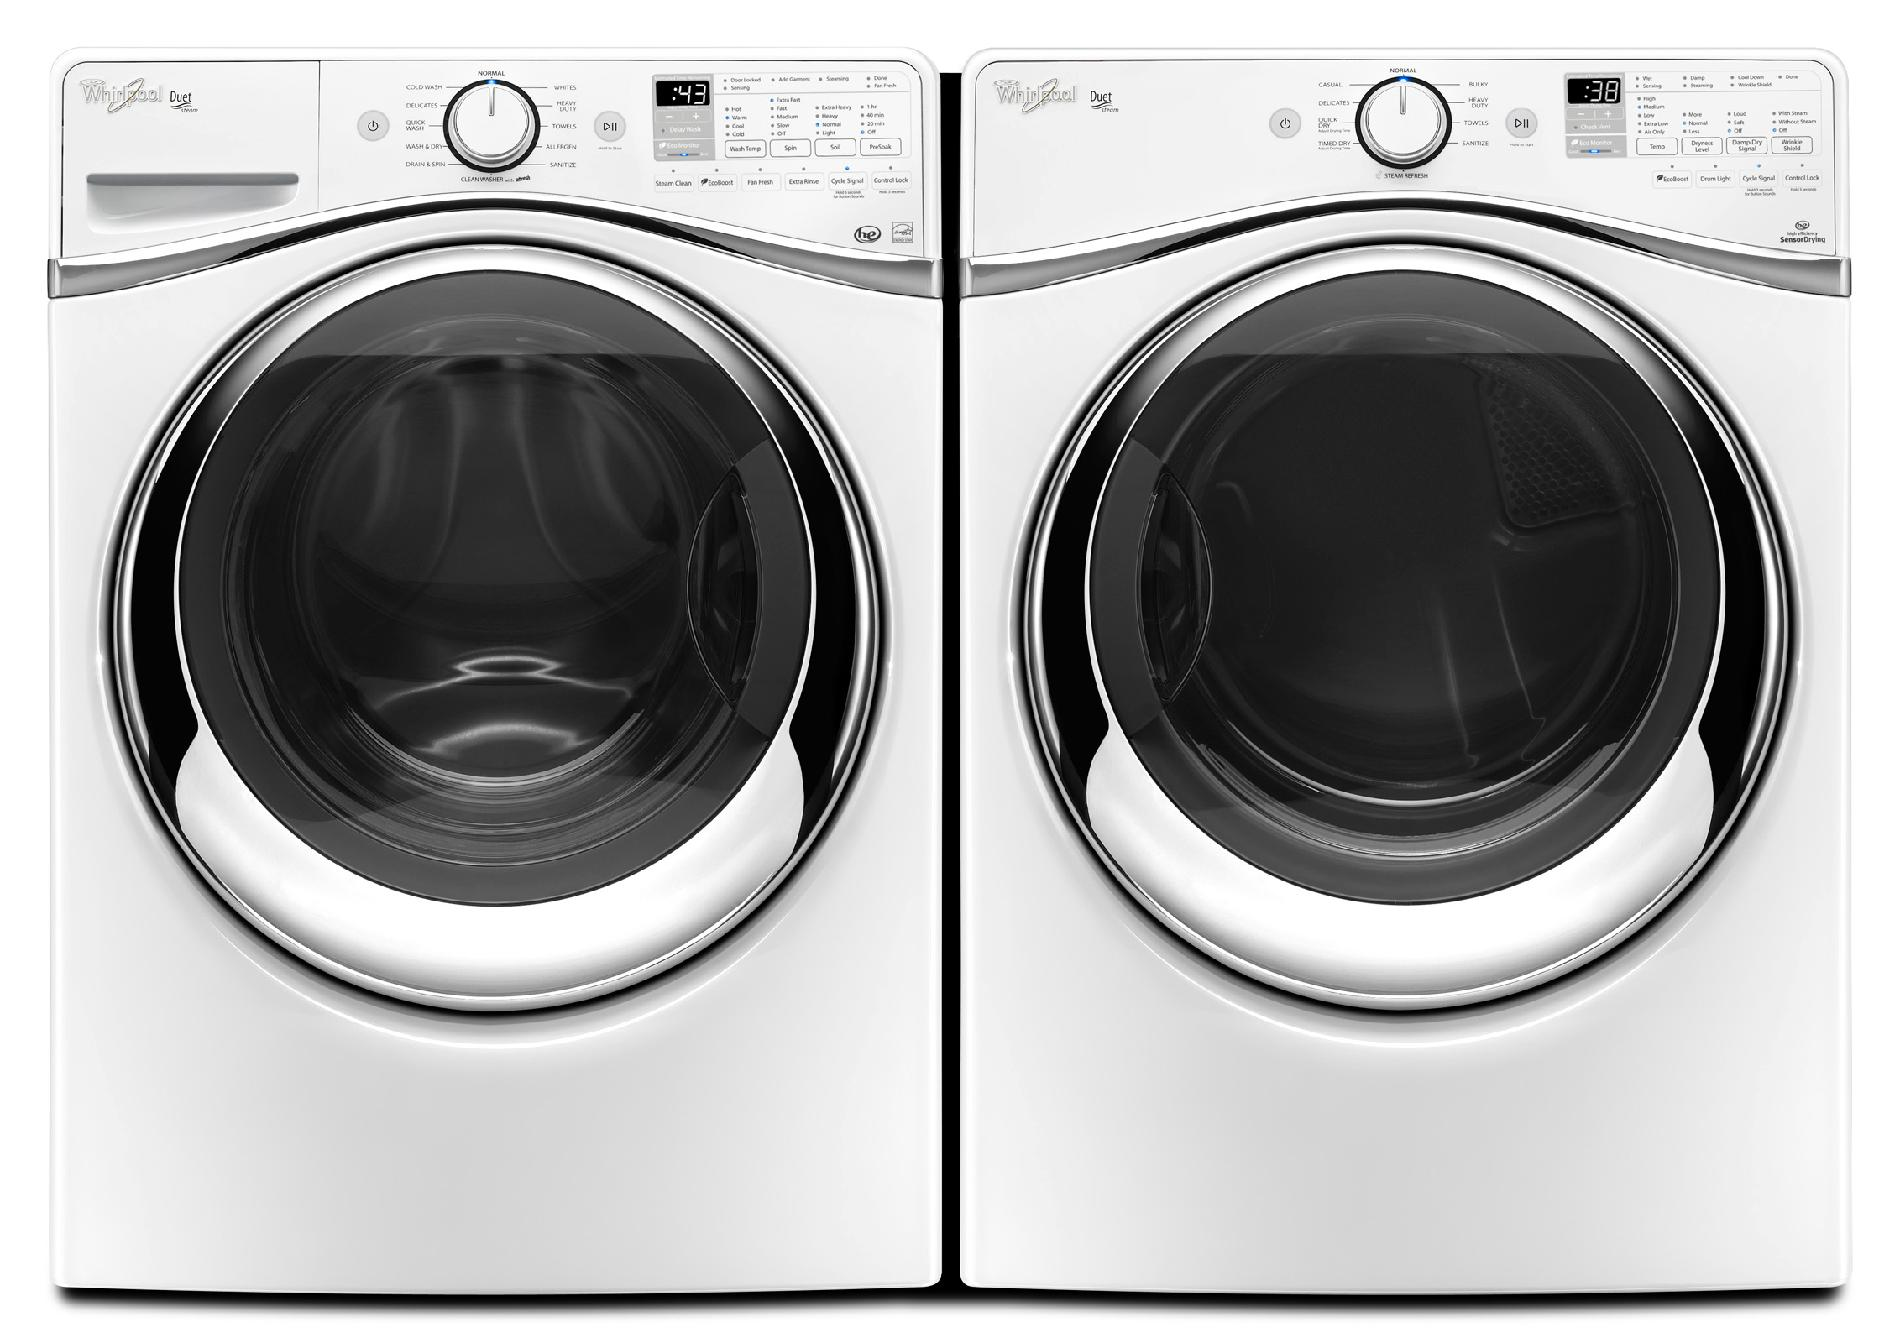 Whirlpool 4.5 cu. ft. Duet® Front-Load Washer w/ Wash and Dry Cycle - White